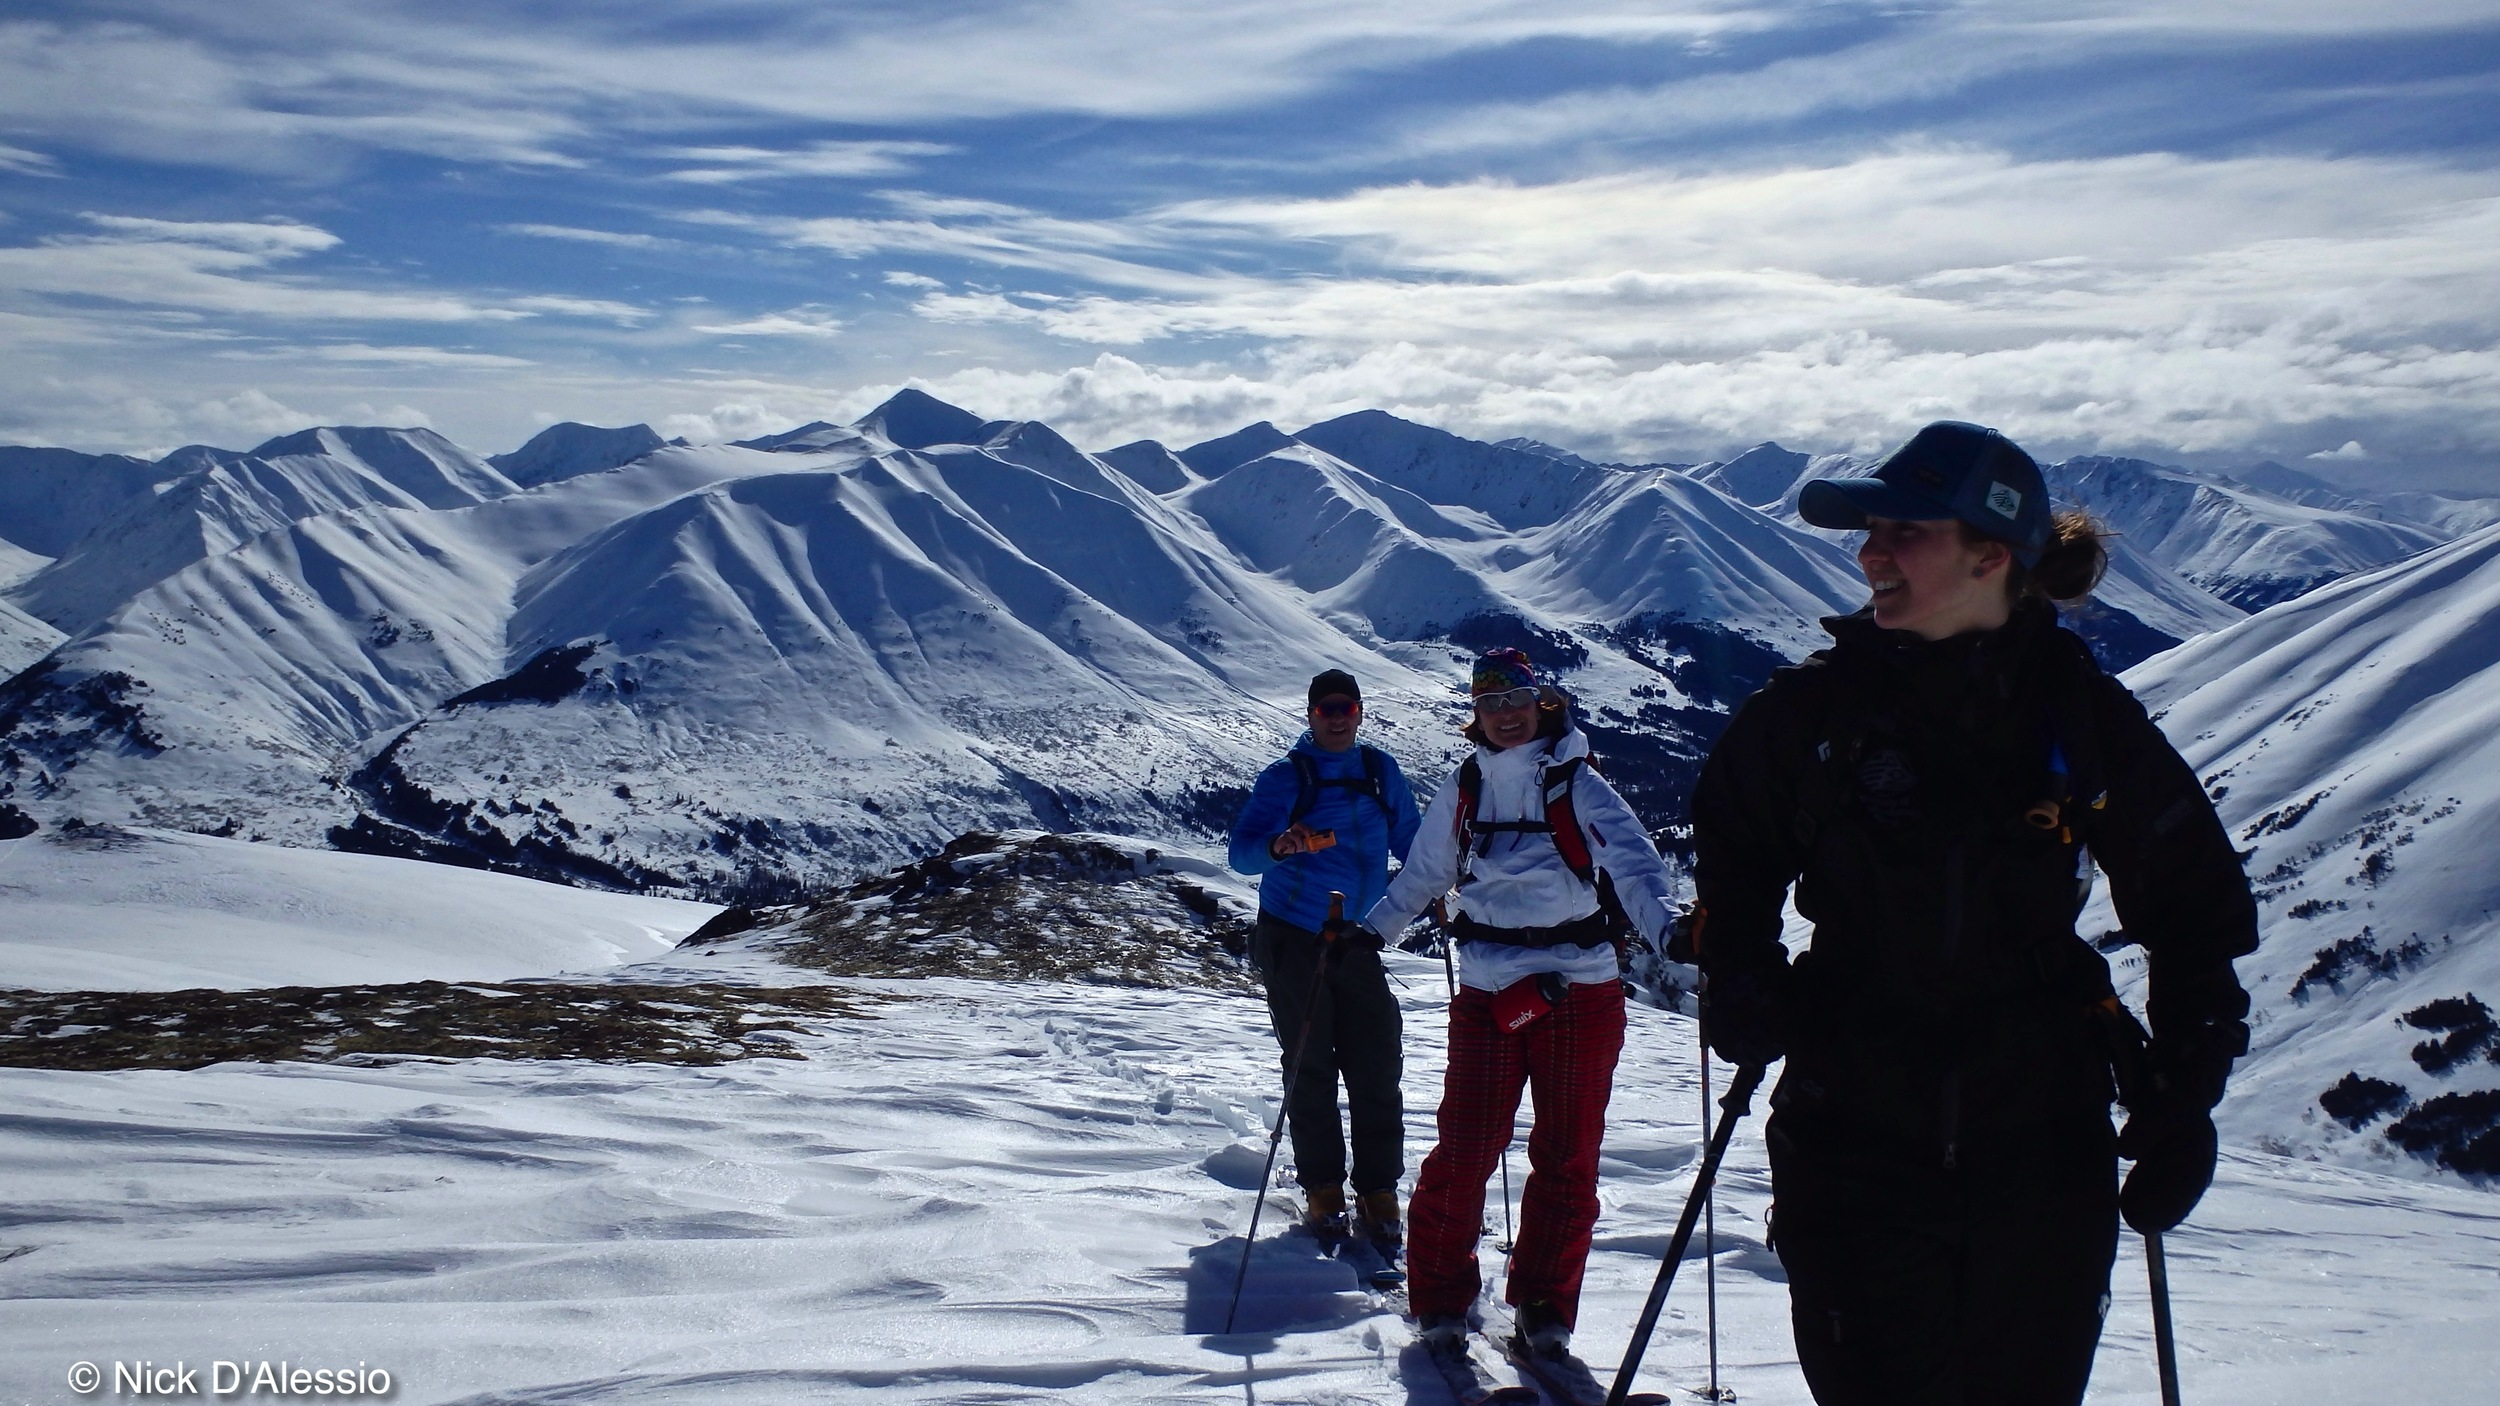 Family backcountry skiing in Alaska with Remarkable Adventures